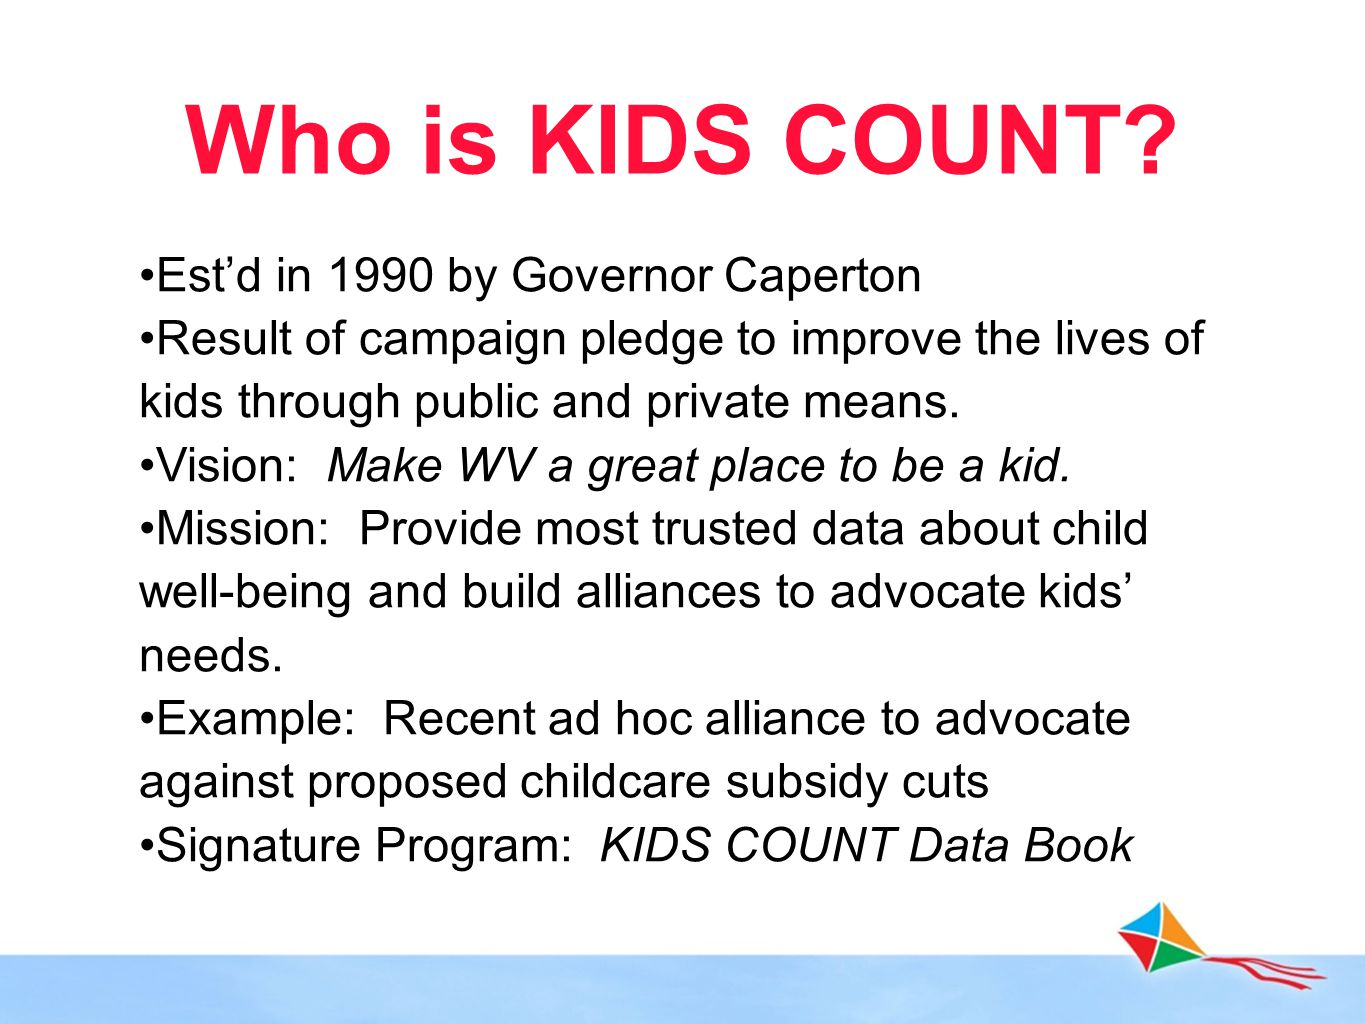 Who is KIDS COUNT? Est'd in 1990 by Governor Caperton Result of campaign pledge to improve the lives of kids through public and private means. Vision: